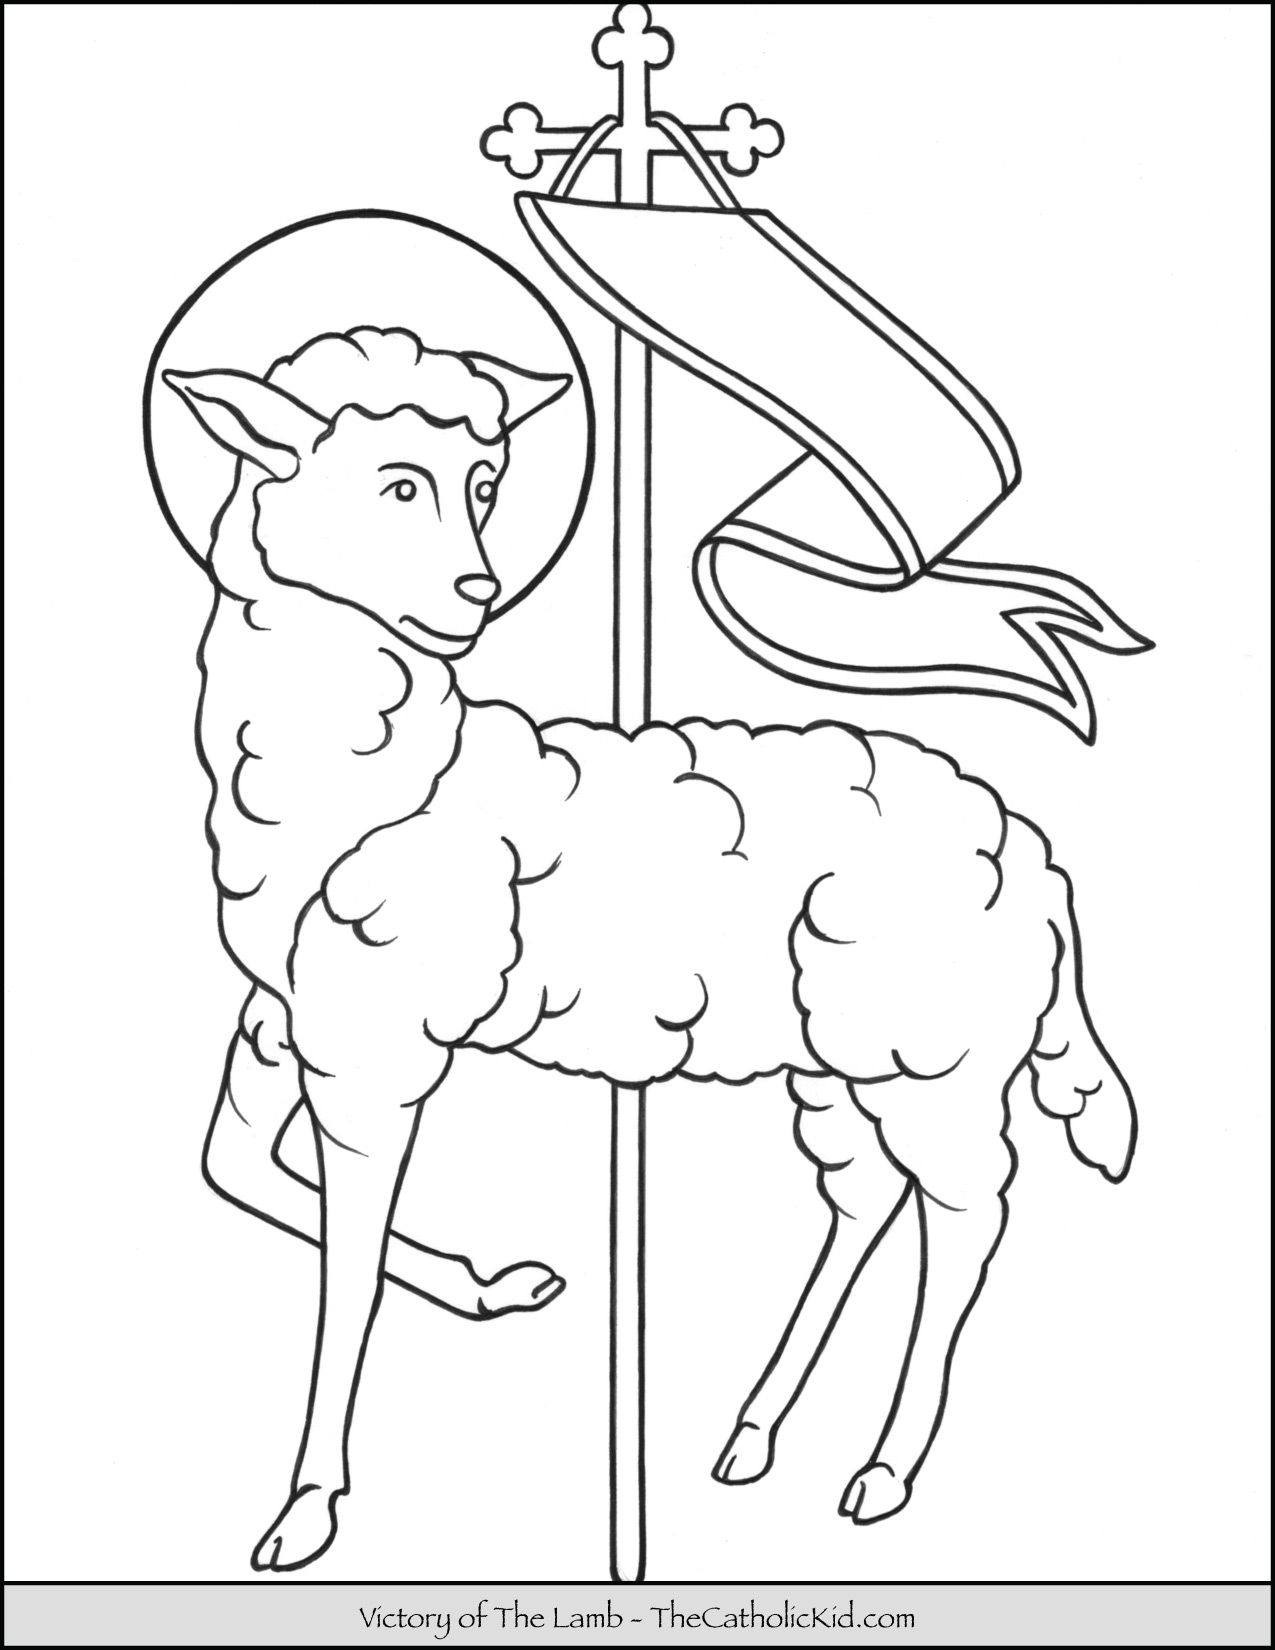 Victory Of The Lamb Coloring Page Thecatholickid Com Jesus Coloring Pages Angel Coloring Pages Animal Coloring Pages [ 1650 x 1275 Pixel ]